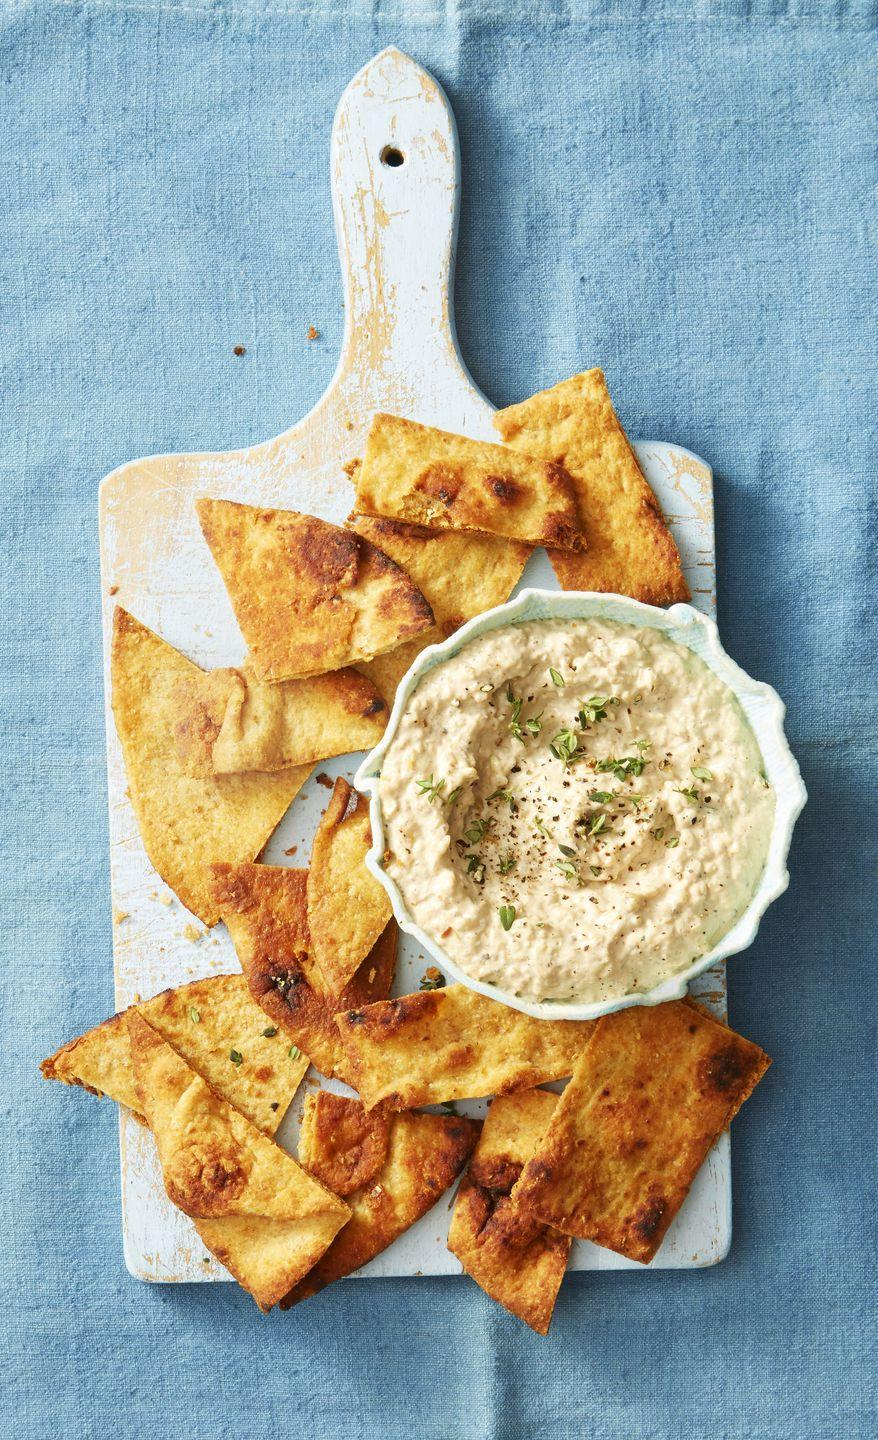 """<p>Onion dip's already a sure-fire crowd pleaser. Step up your hostess game by serving it with oven-roasted flatbreads that hold their own. </p><p><em><a href=""""https://www.goodhousekeeping.com/food-recipes/a38843/naan-chips-recipe/"""" rel=""""nofollow noopener"""" target=""""_blank"""" data-ylk=""""slk:Get the recipe for Naan Chips »"""" class=""""link rapid-noclick-resp"""">Get the recipe for Naan Chips »</a></em></p><p><span class=""""redactor-invisible-space""""><em><a href=""""https://www.goodhousekeeping.com/food-recipes/a38842/grilled-onion-dip-recipe/"""" rel=""""nofollow noopener"""" target=""""_blank"""" data-ylk=""""slk:Get the recipe for Grilled Onion Dip »"""" class=""""link rapid-noclick-resp"""">Get the recipe for Grilled Onion Dip »</a></em><br></span></p>"""